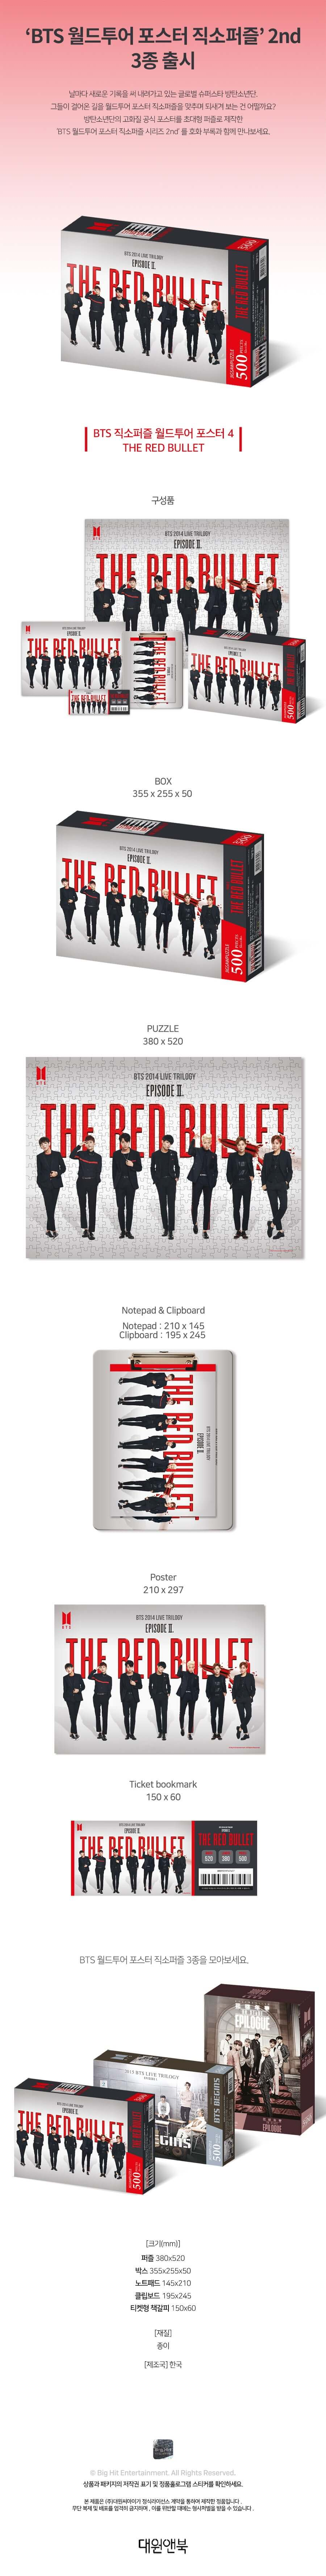 BTS Jigsaw Puzzle World Tour Poster 4: The Red Bullet